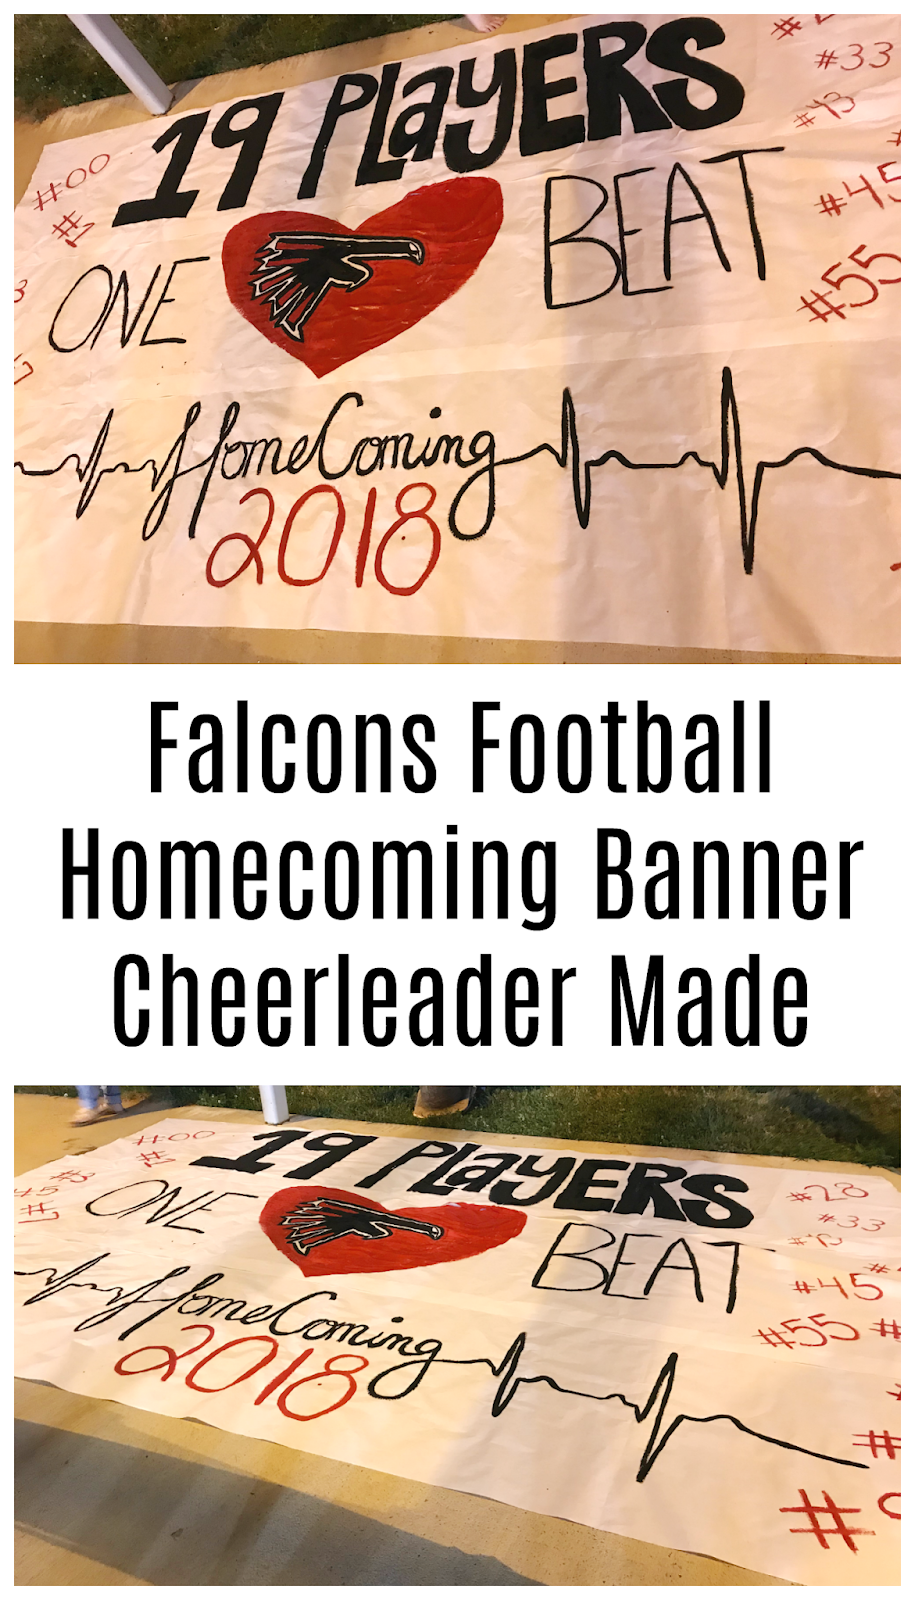 homecoming banner idea